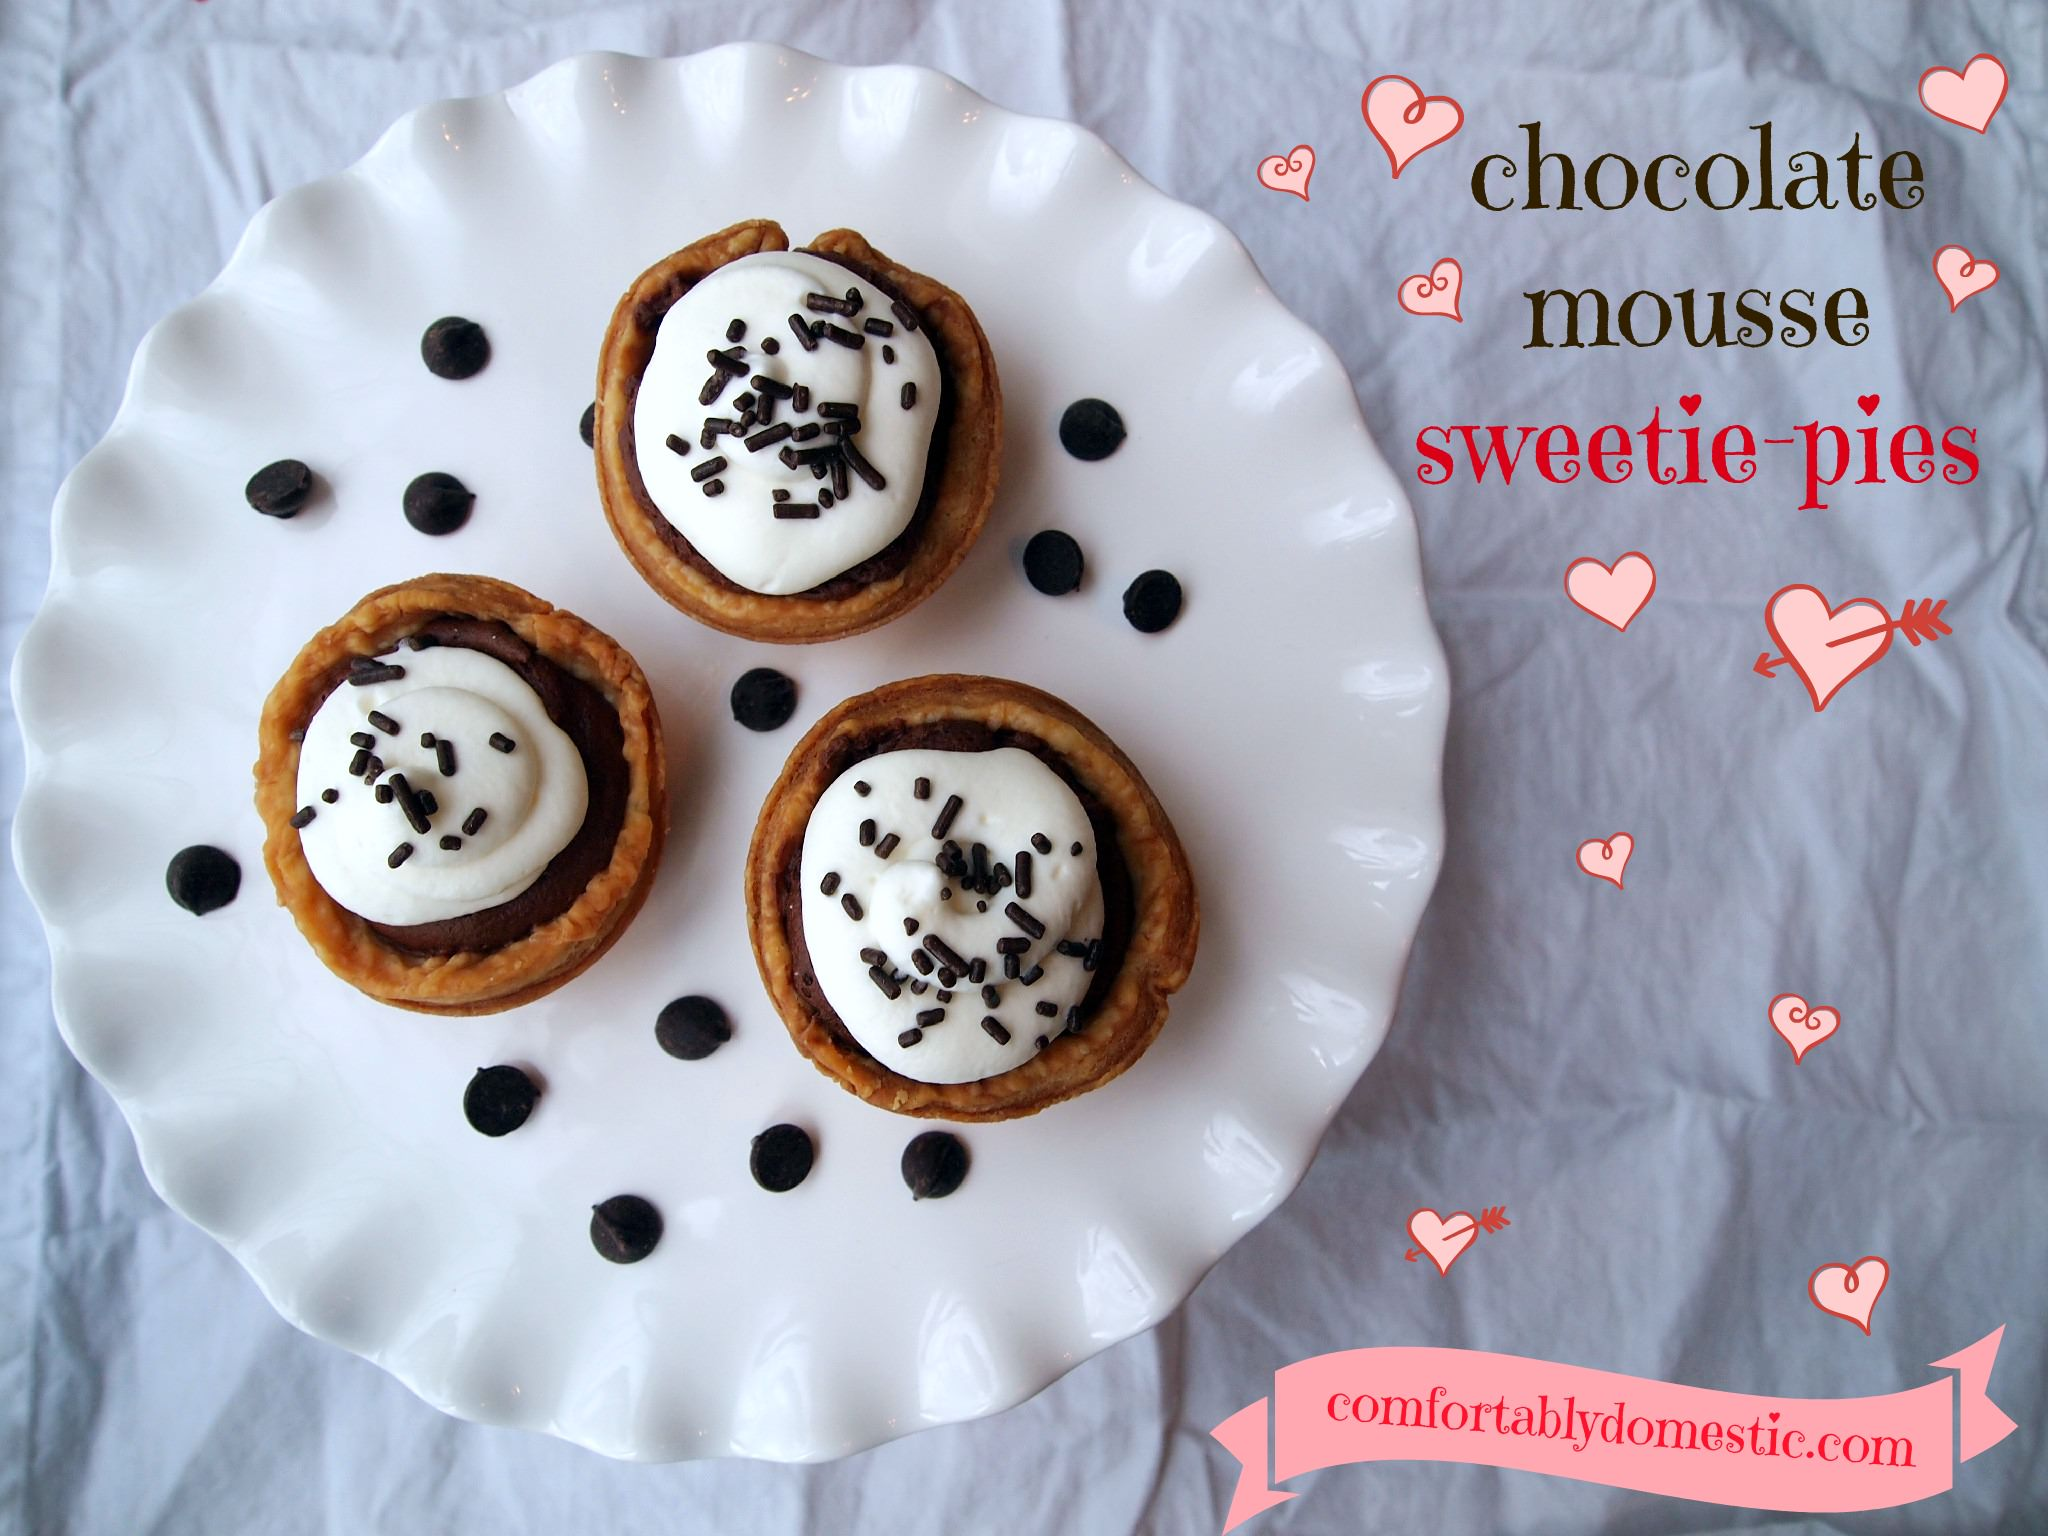 Chocolate Mousse Pie - Chocolate mousse is the star of the show in these adorable and delicious chocolate mousse sweetie pies. The perfect Valentine's Day dessert! | ComfortablyDomestic.com